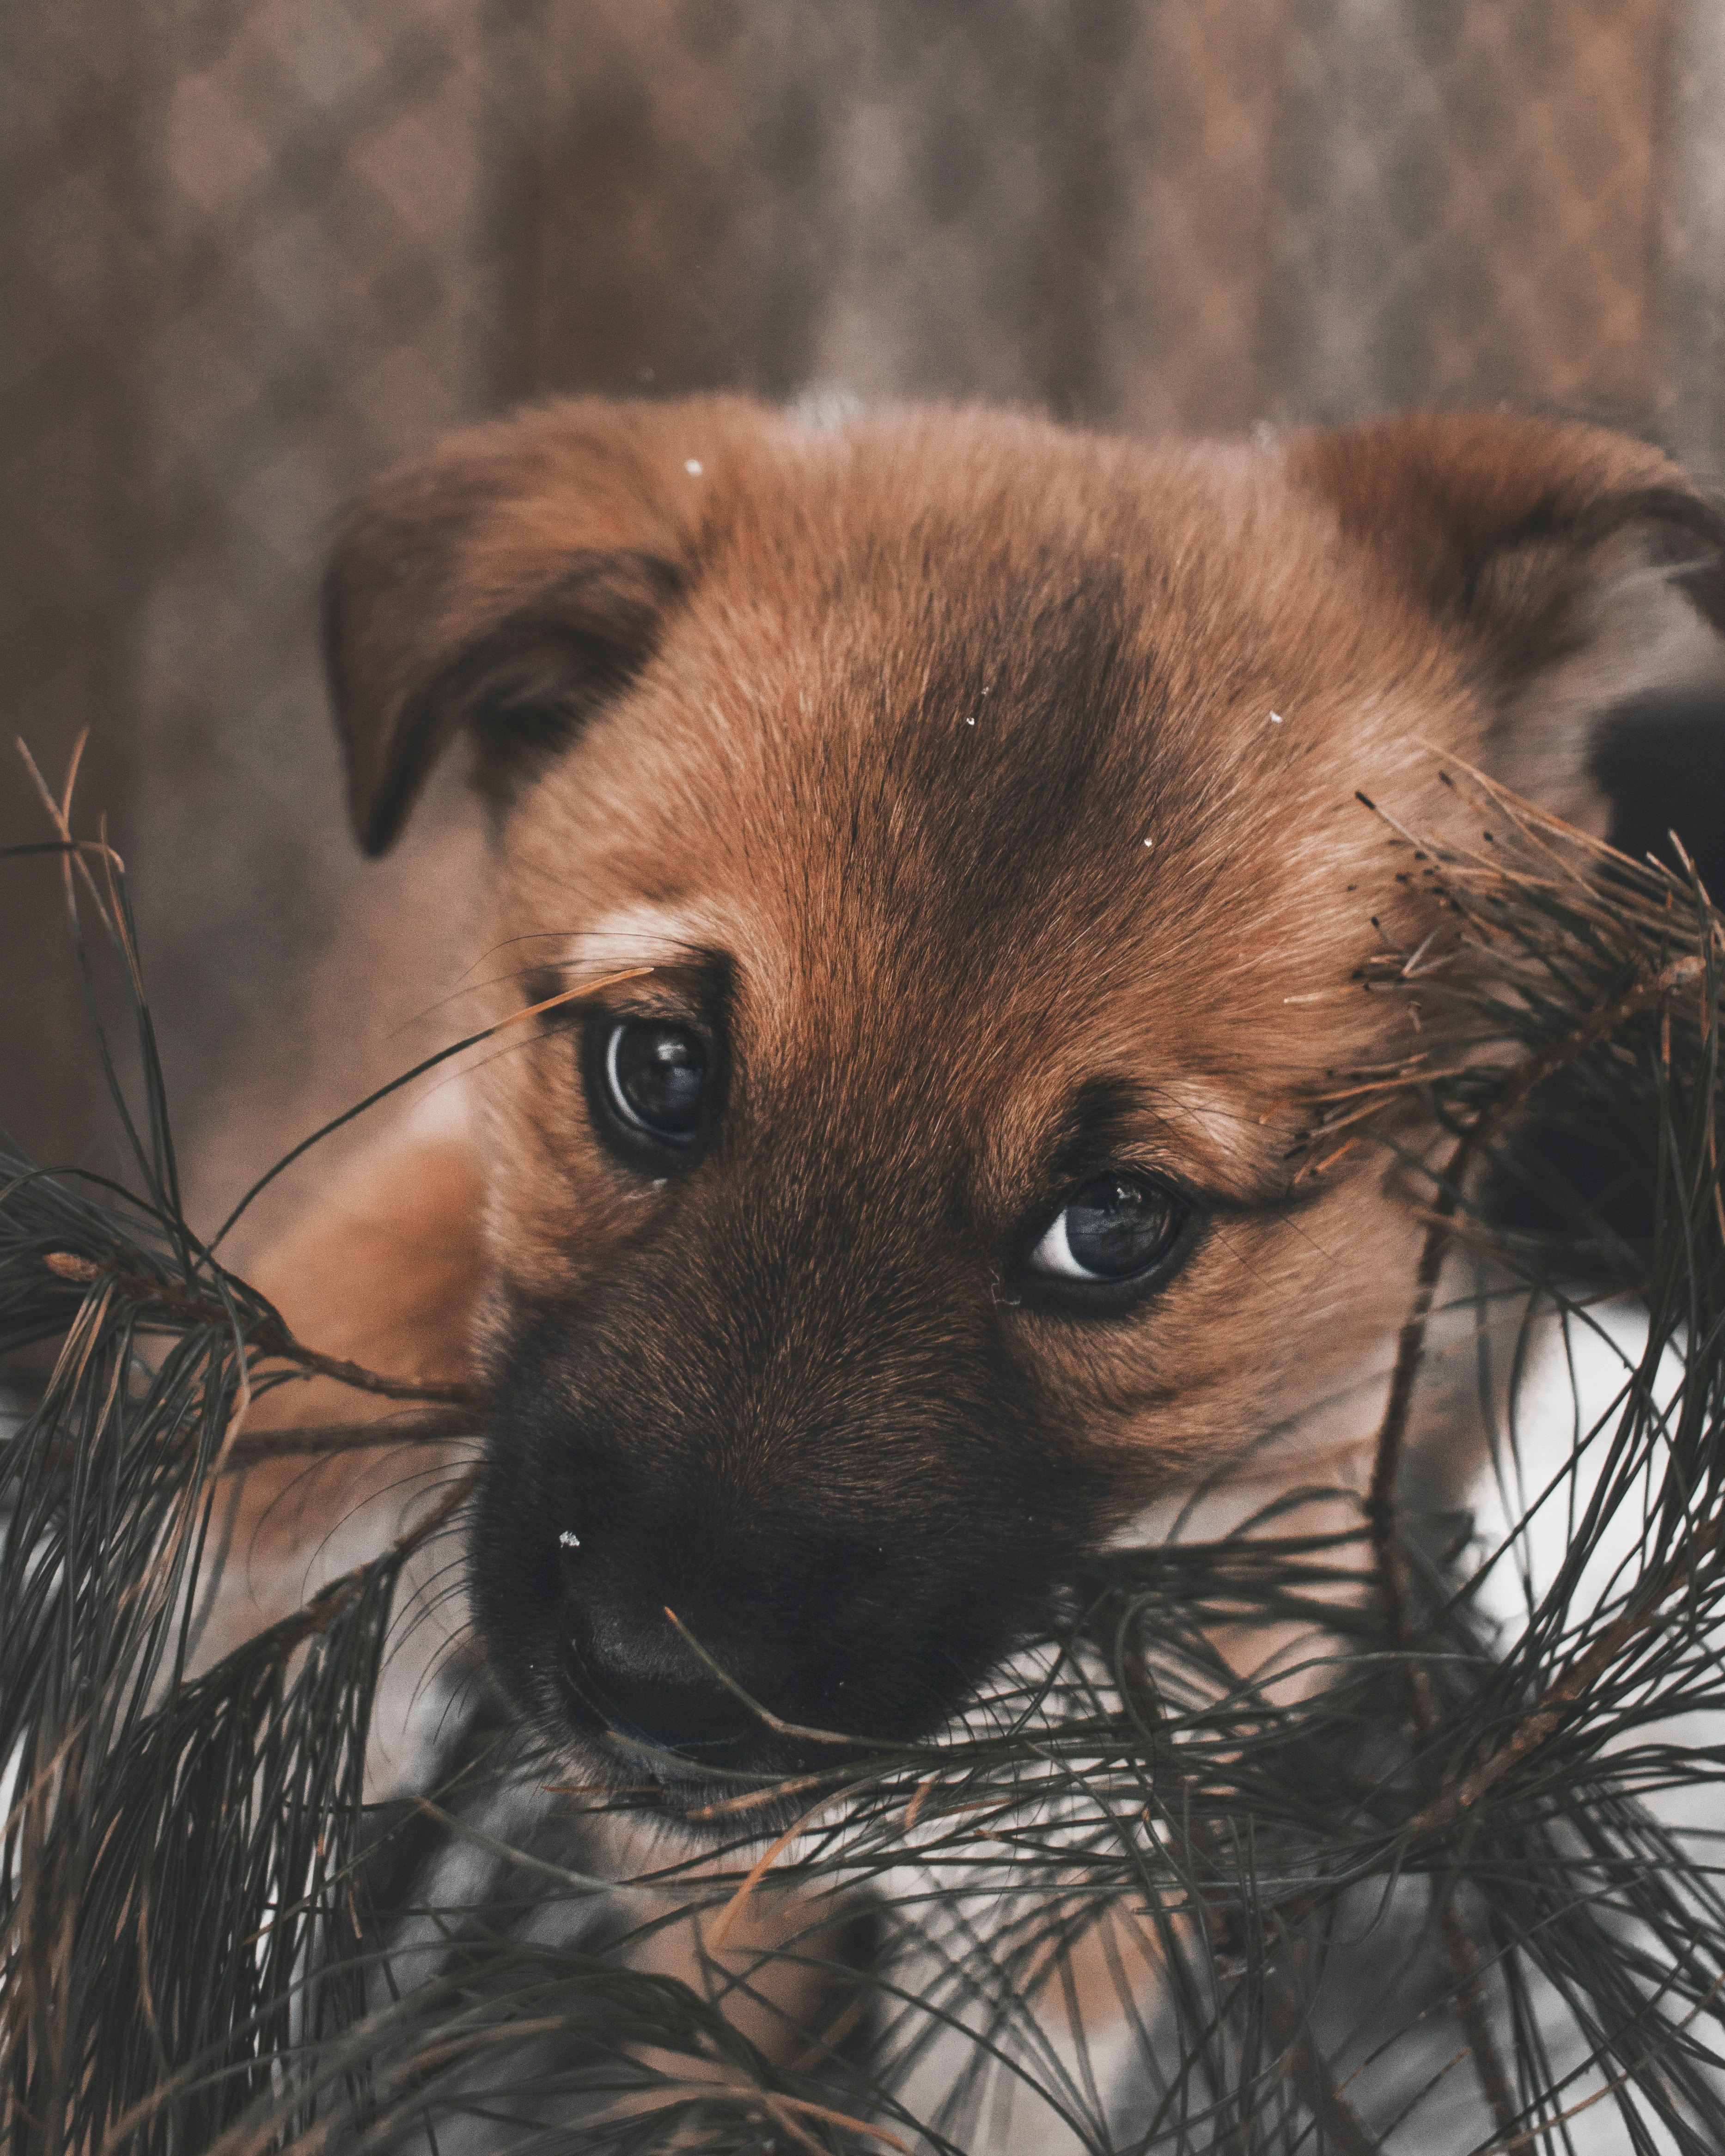 95650 download wallpaper Animals, Dog, Puppy, Nice, Sweetheart, Eyes screensavers and pictures for free